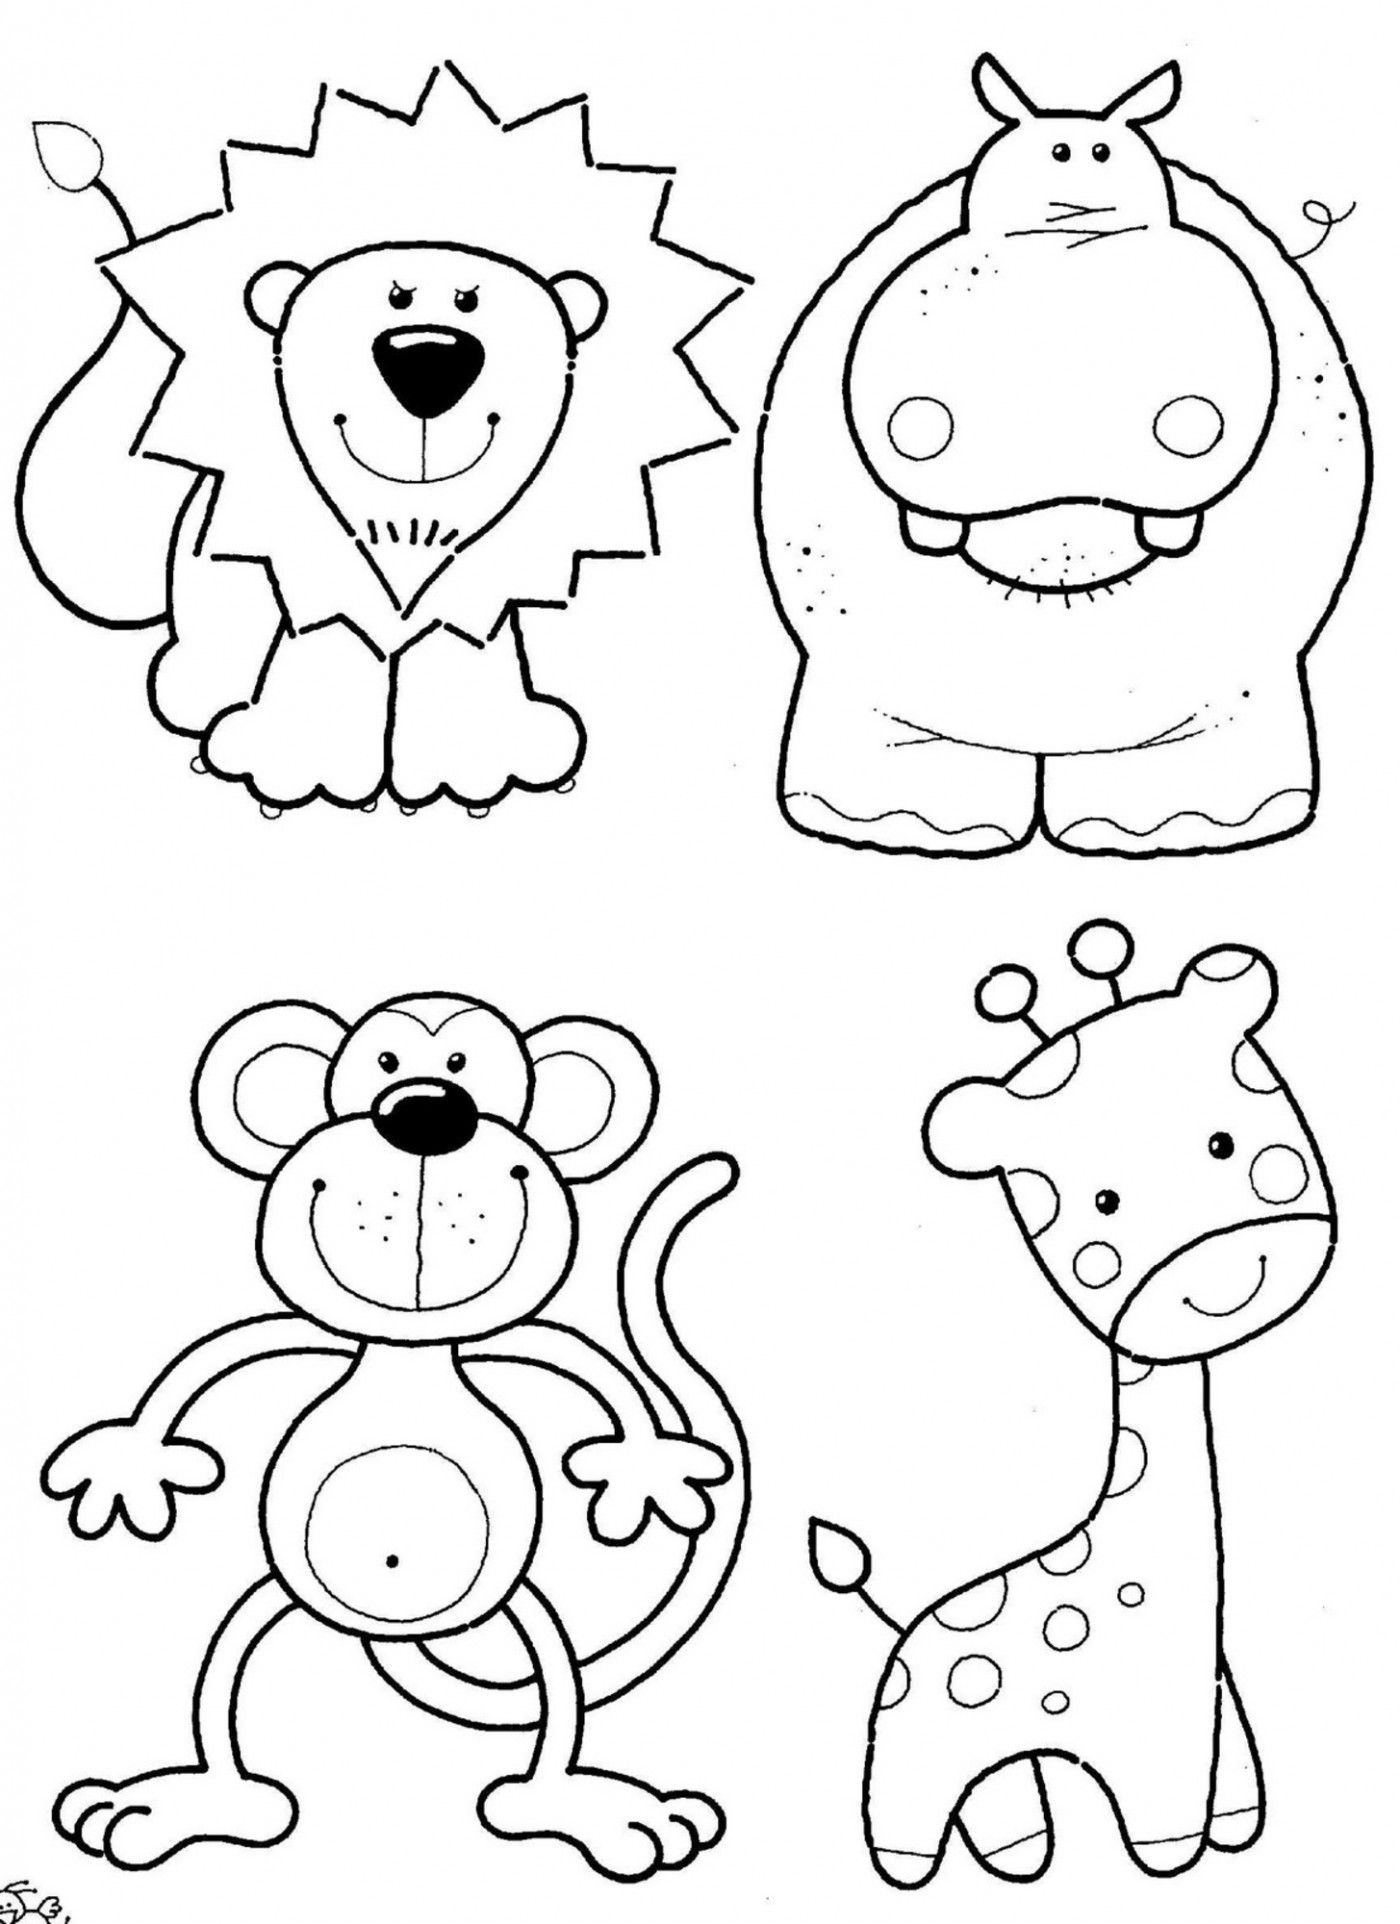 Animal Coloring Pages (14) Coloring Kids Zoo animal